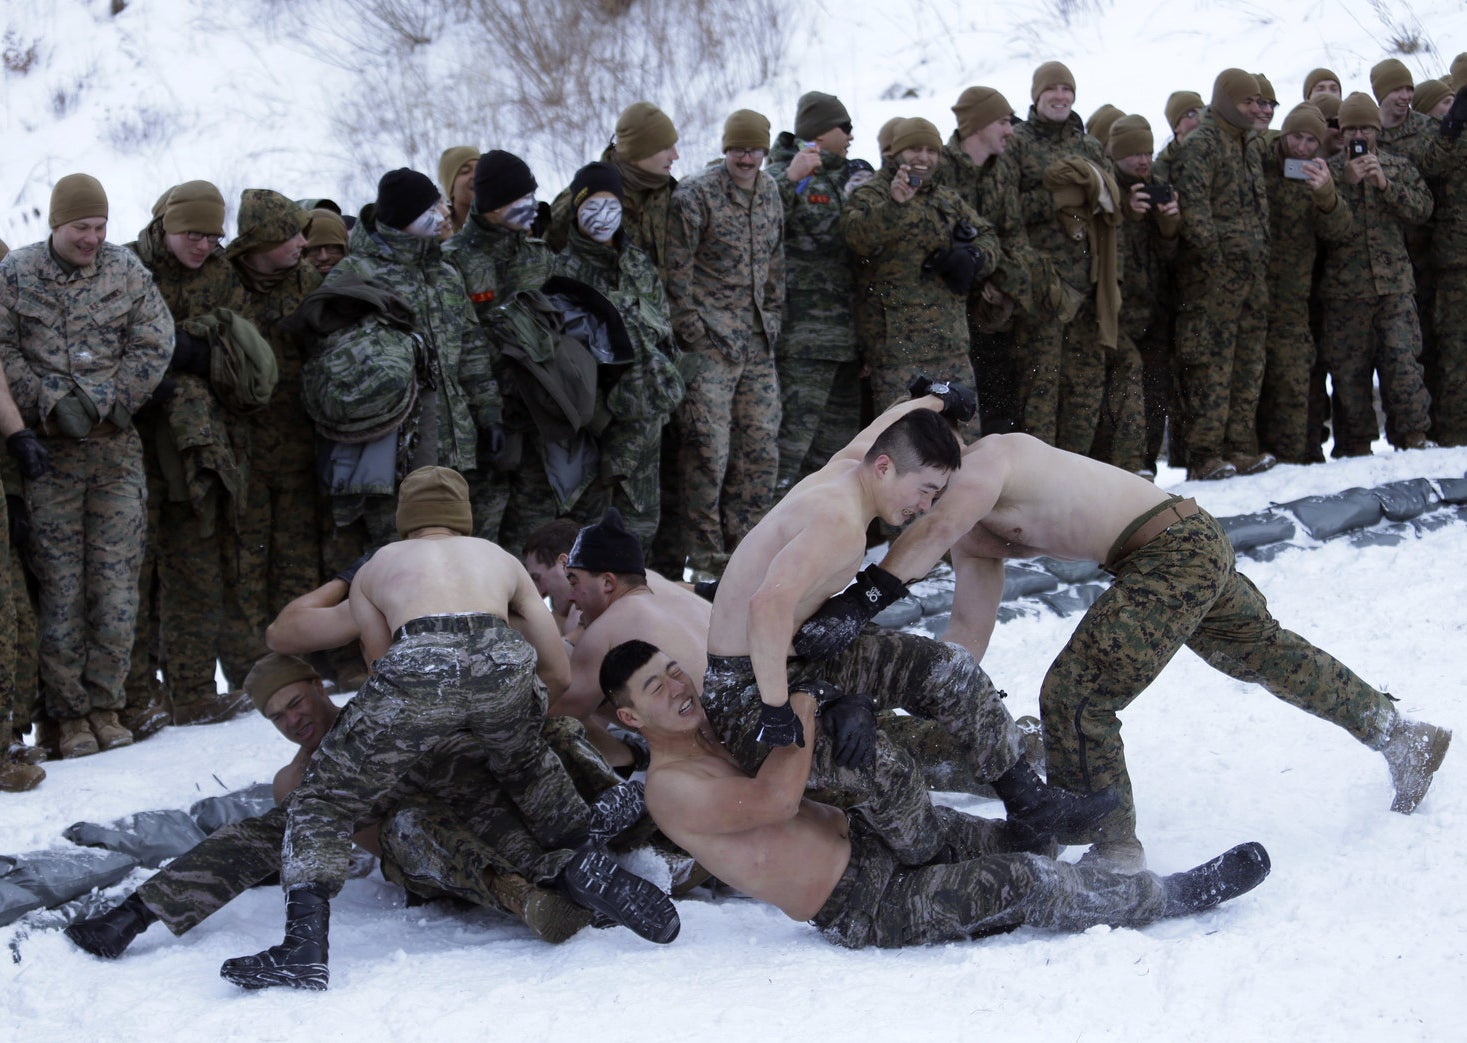 South Korean and US Marines have a wrestling match during their joint military winter exercise in Pyeongchang, South Korea, on Dec. 19.